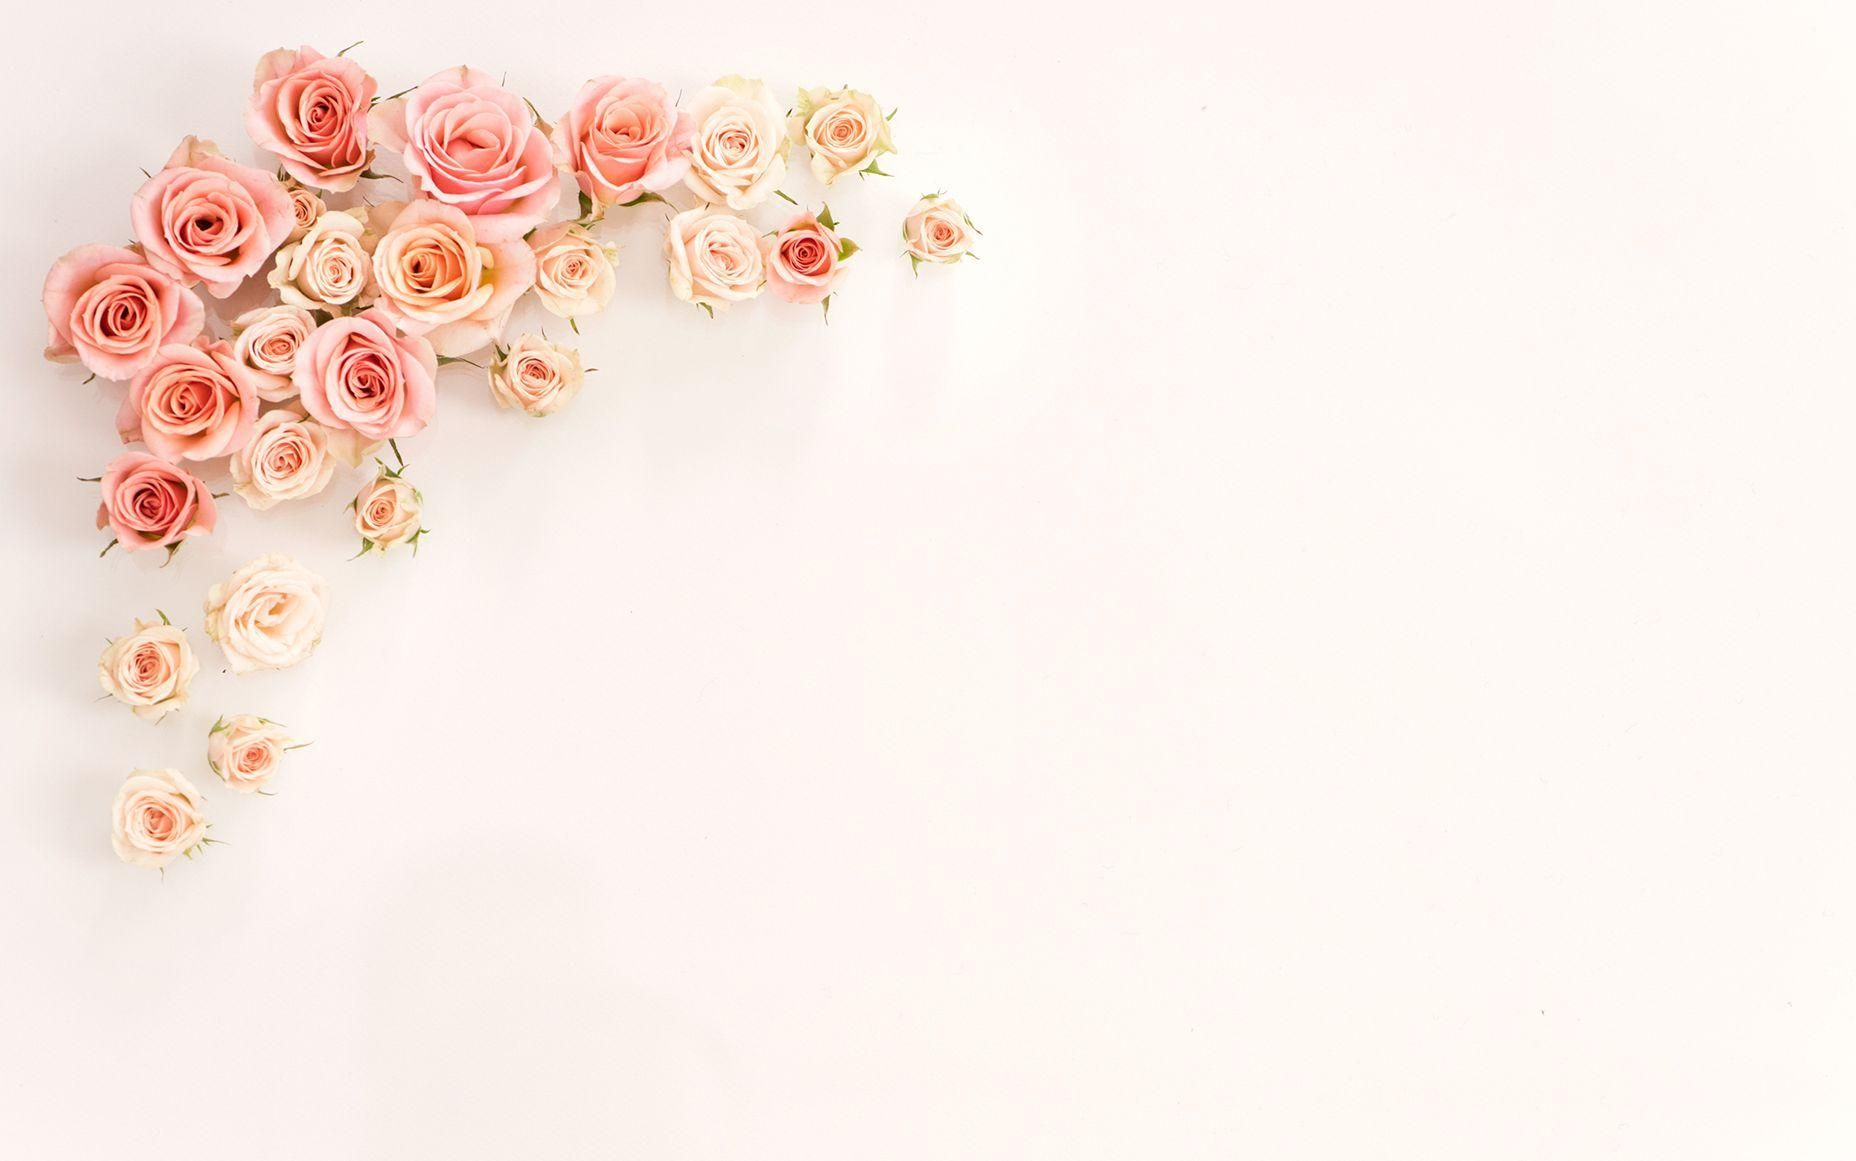 Rose Gold Aesthetic Wallpapers Top Free Rose Gold Aesthetic Backgrounds Wallpaperaccess